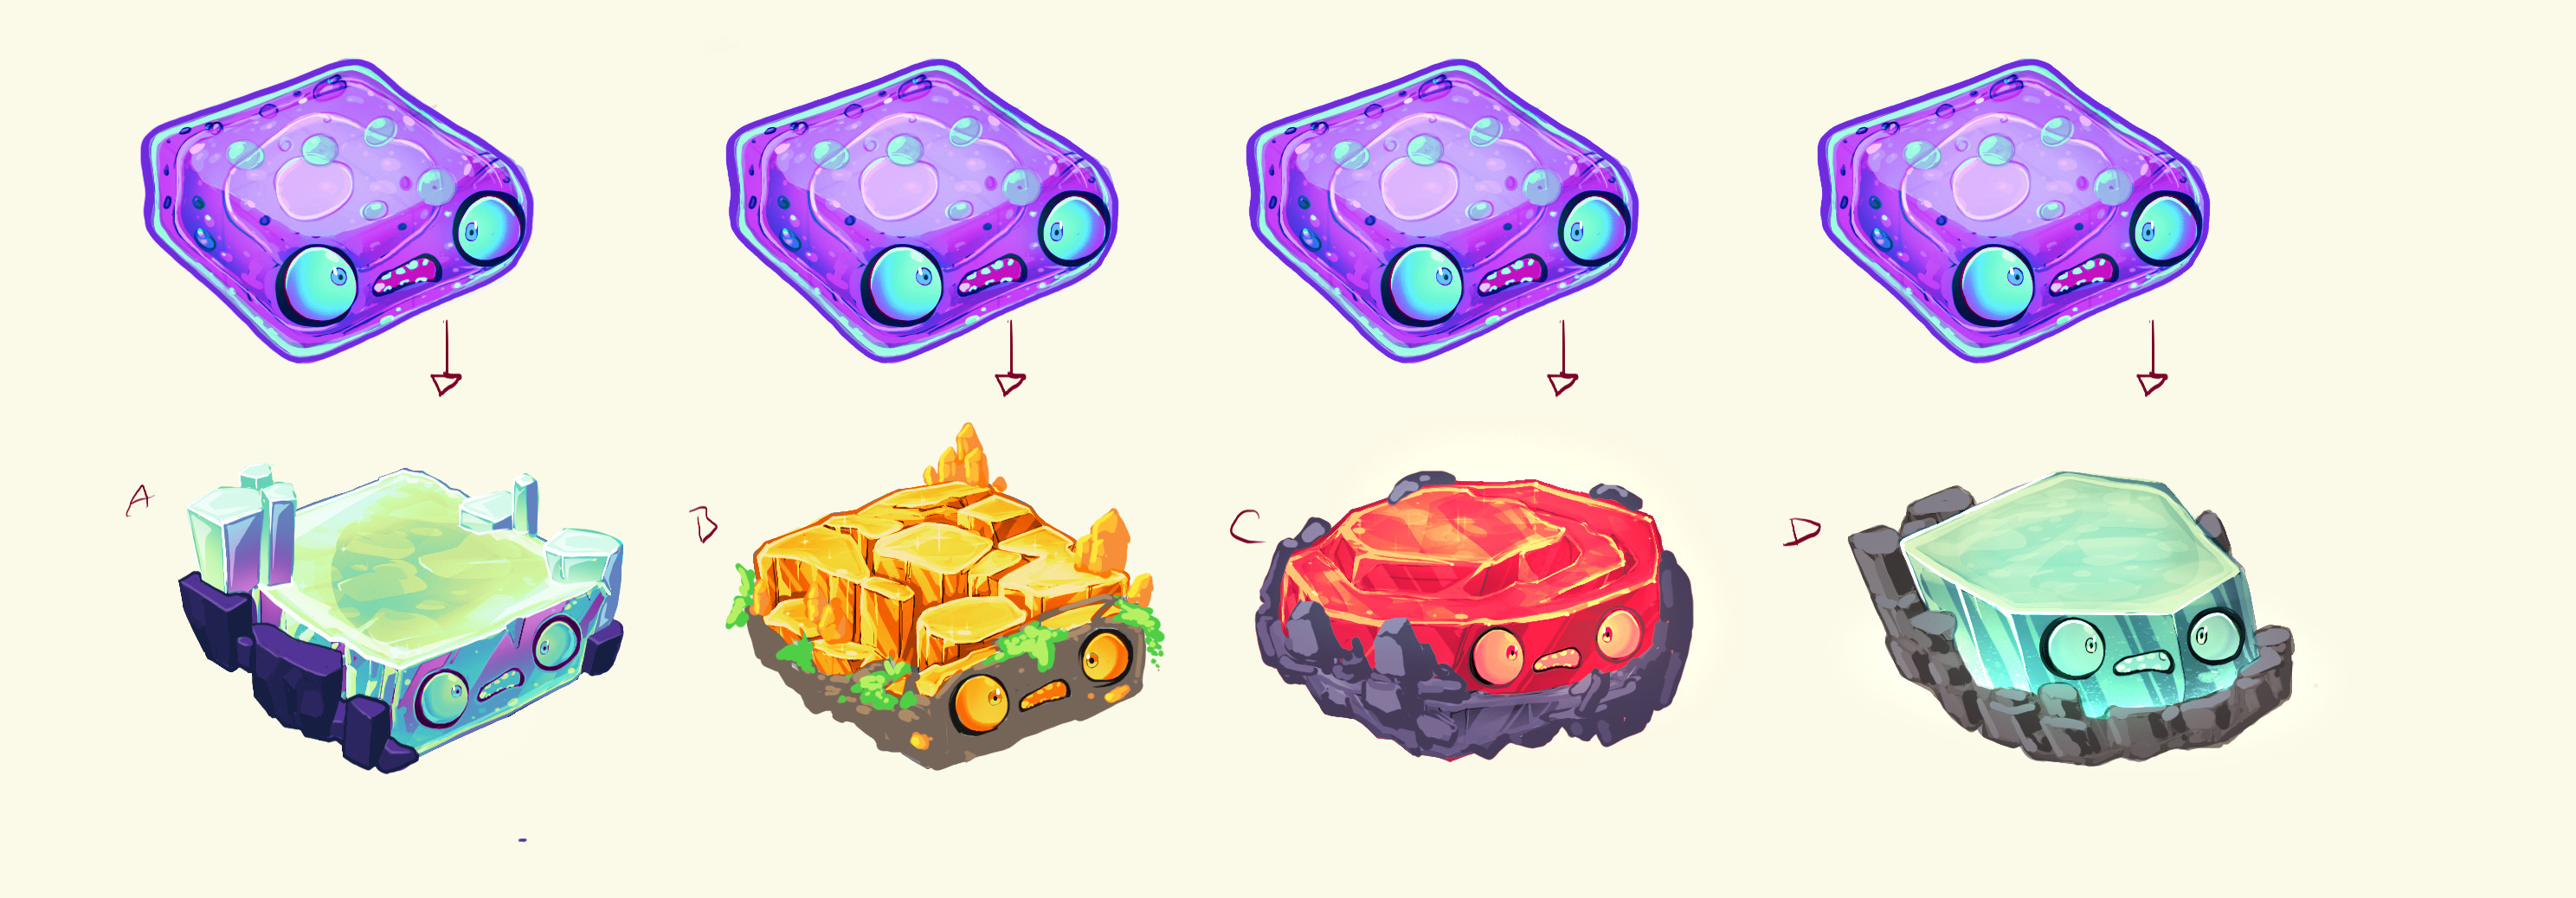 Ideations for Neo Cortexs' weapon. At this point it was clear that they needed a solid and jelly version so there were some options.